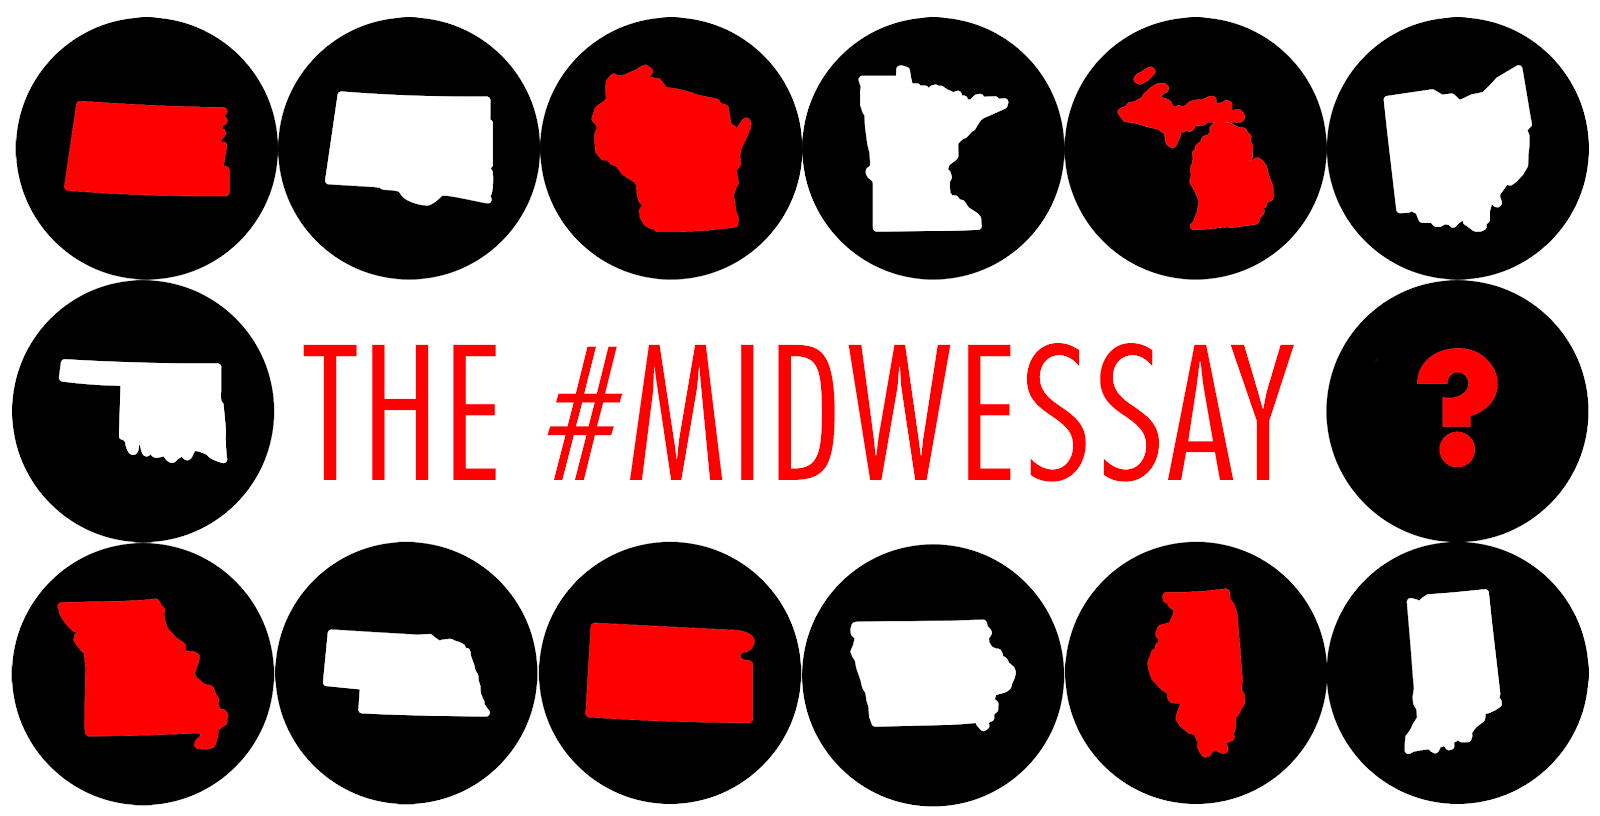 The #Midwessay